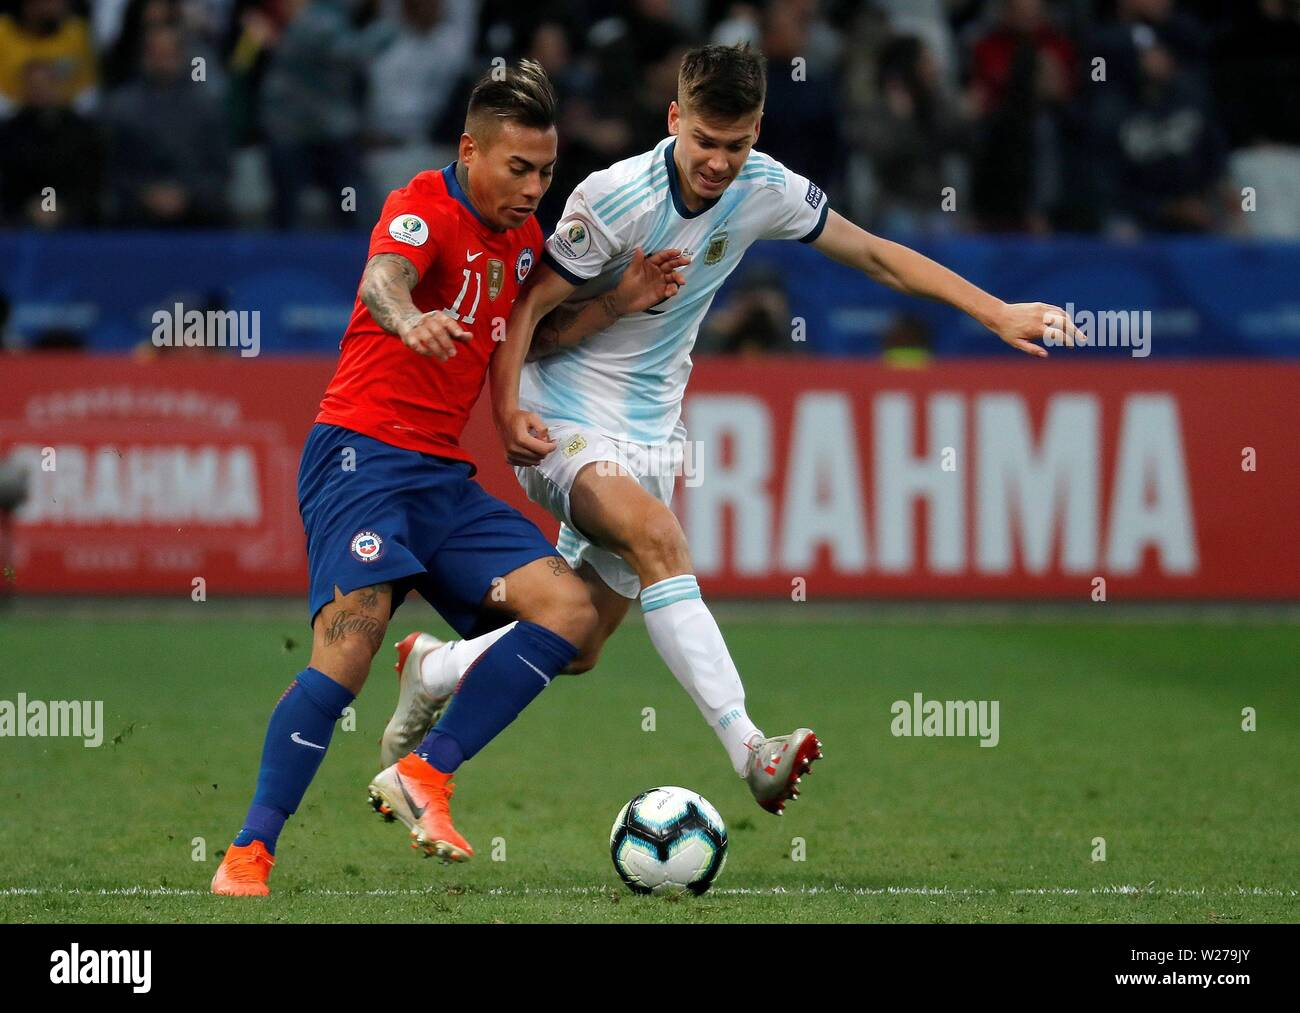 Sao Paulo, Brazil. 06th July, 2019. Chile's Eduardo Vargas (L) and Argentina's Juan Foyth vie for the ball during the Copa America 2019 3rd place soccer match between Argentina and Chile, at Arena Corinthians Stadium in Sao Paulo, Brazil, 6 July 2019. Credit: Paulo Whitaker/EFE/Alamy Live News - Stock Image